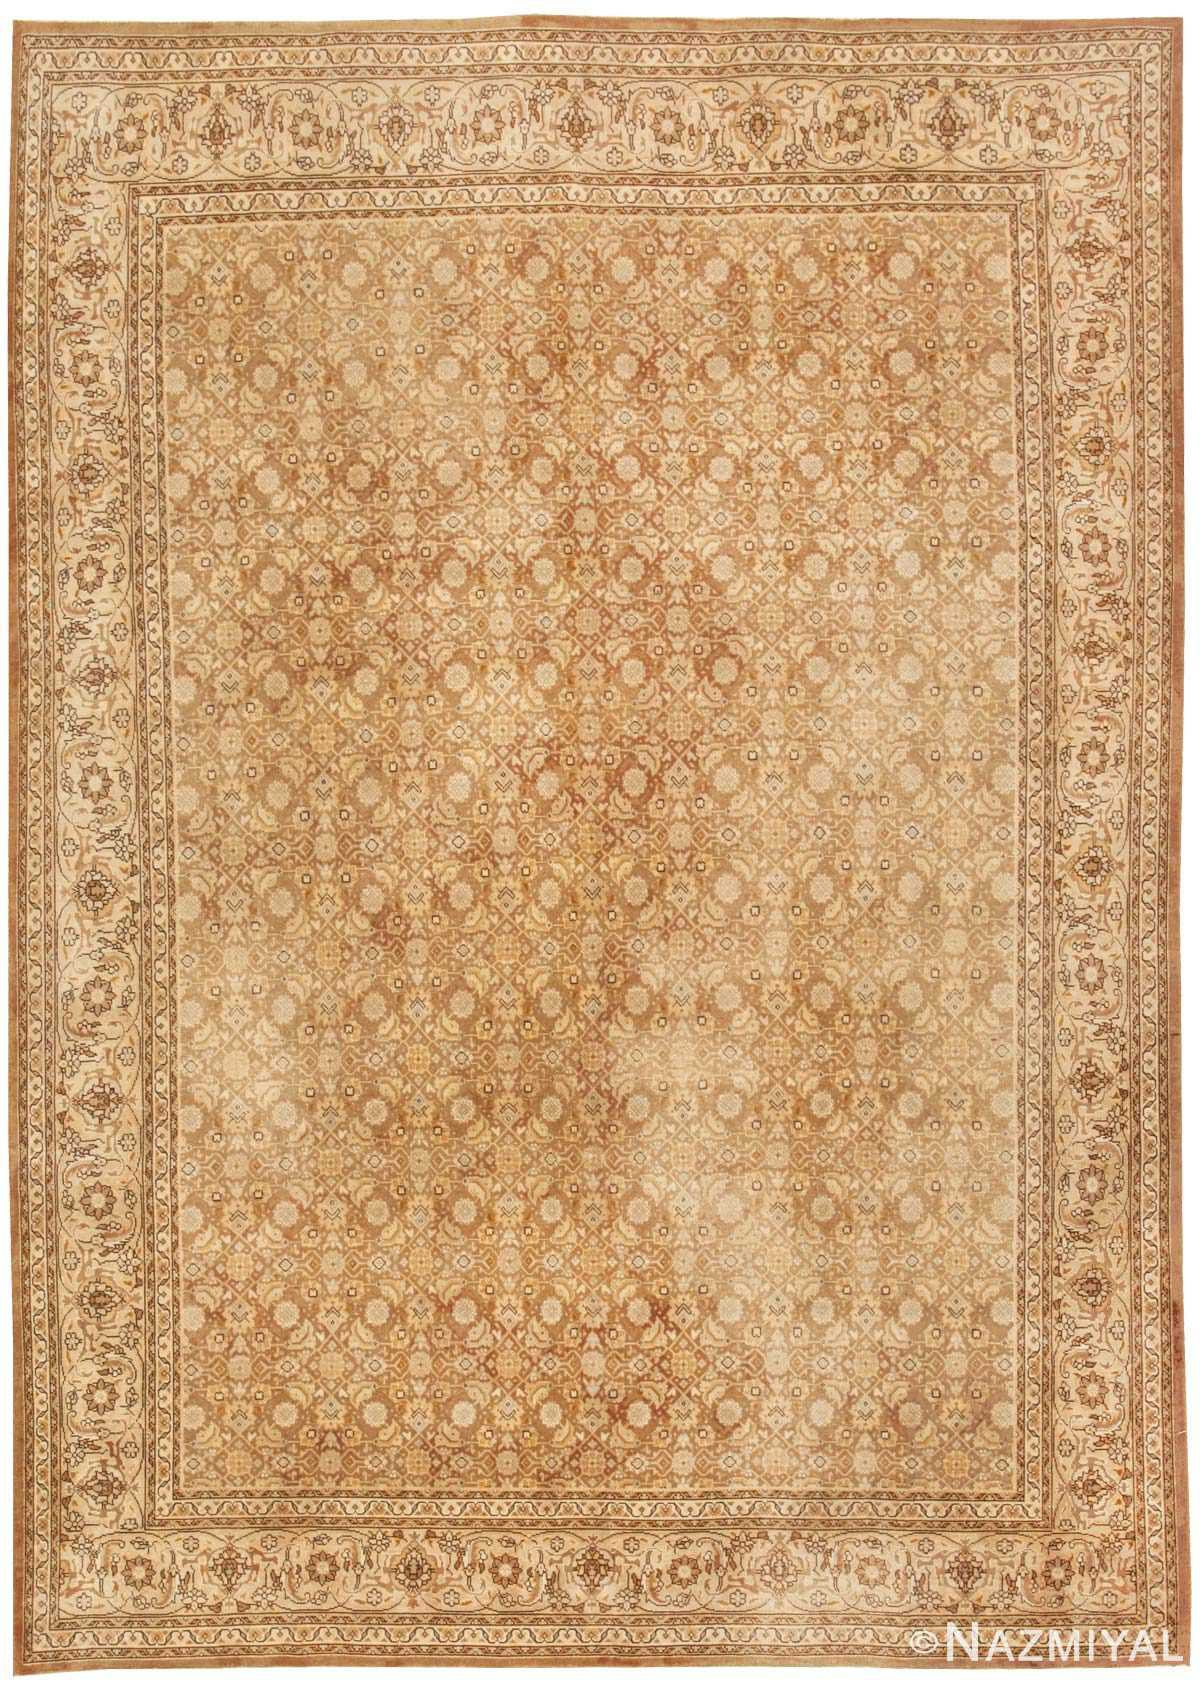 Antique Tabriz Persian Rug 44600 Nazmiyal